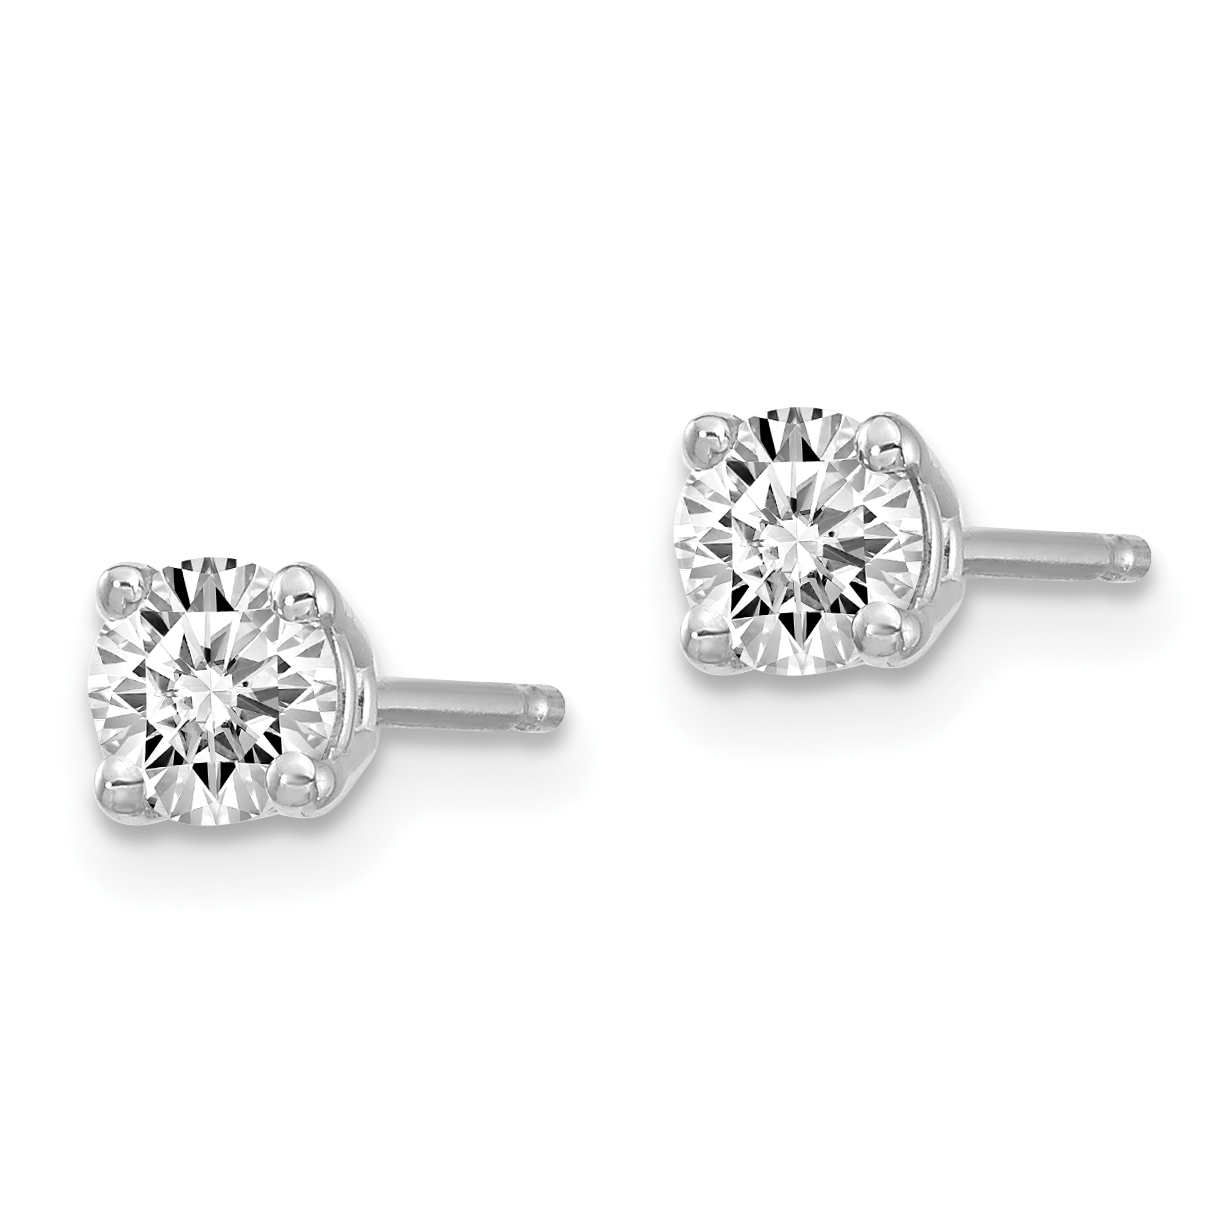 14k White Gold 1/3ctw Certified Vs/si Def Lab Grown Diamond 4 Prong Post Stud Earrings Fine Jewelry Gifts For Women For Her - image 1 of 2